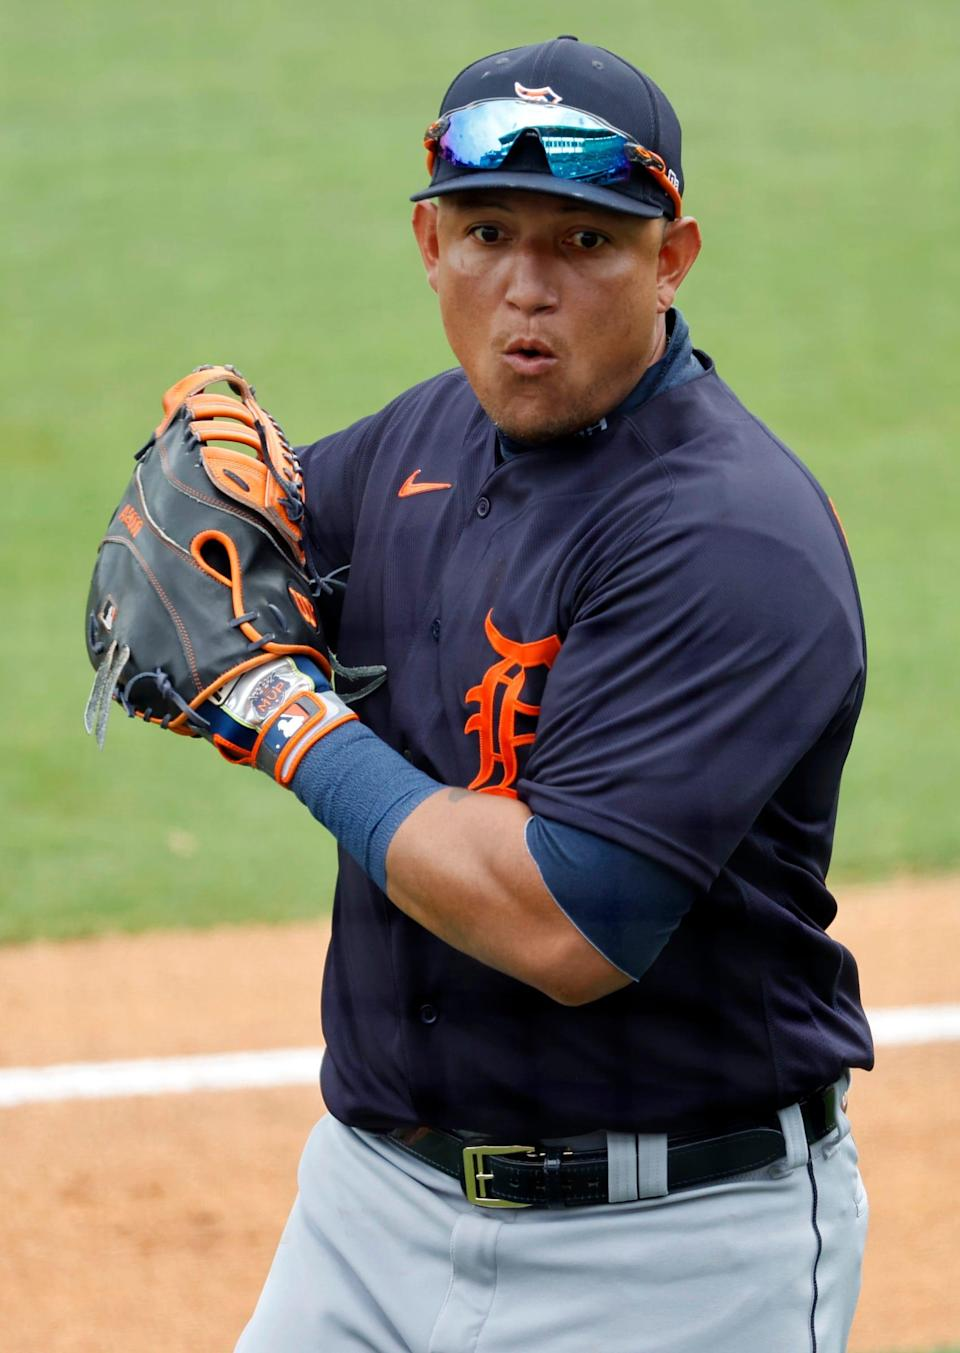 Detroit Tigers first baseman Miguel Cabrera (24) against the New York Yankees on March 29, 2021, at George M. Steinbrenner Field in Florida.